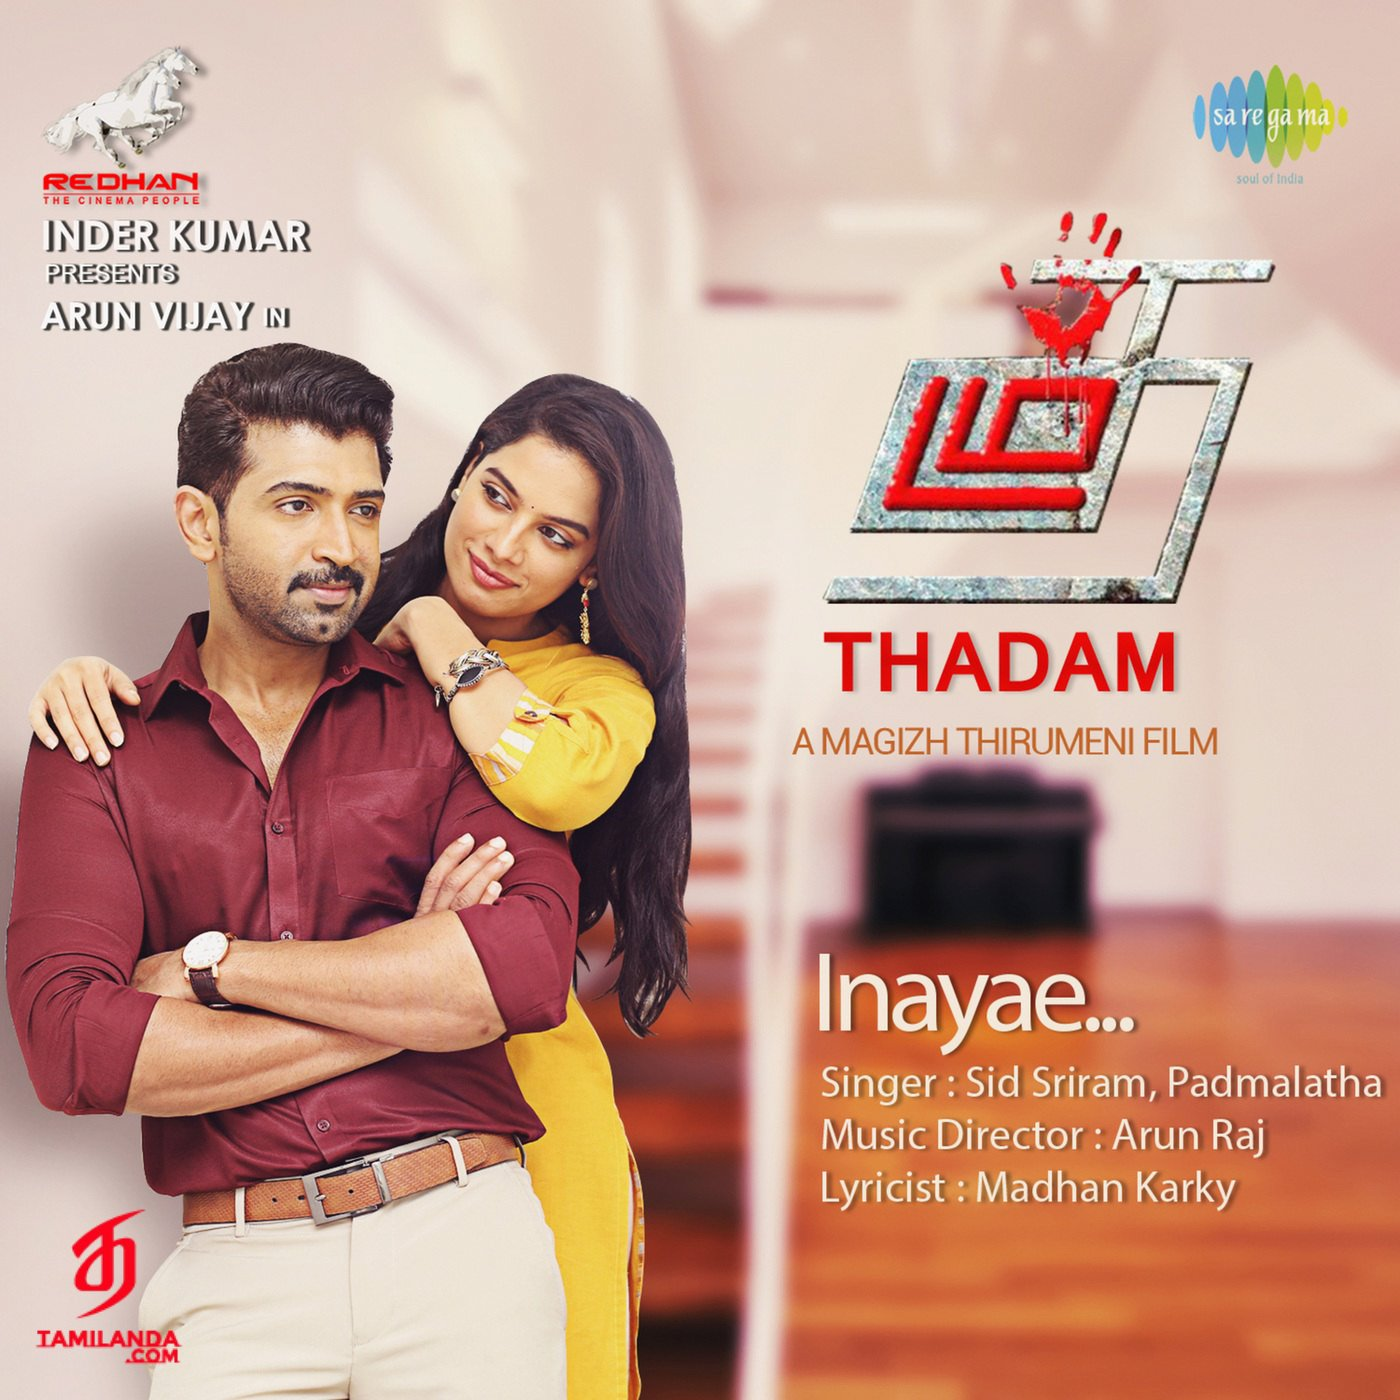 Inayae (From Thadam) – Single 16 BIT FLAC Song